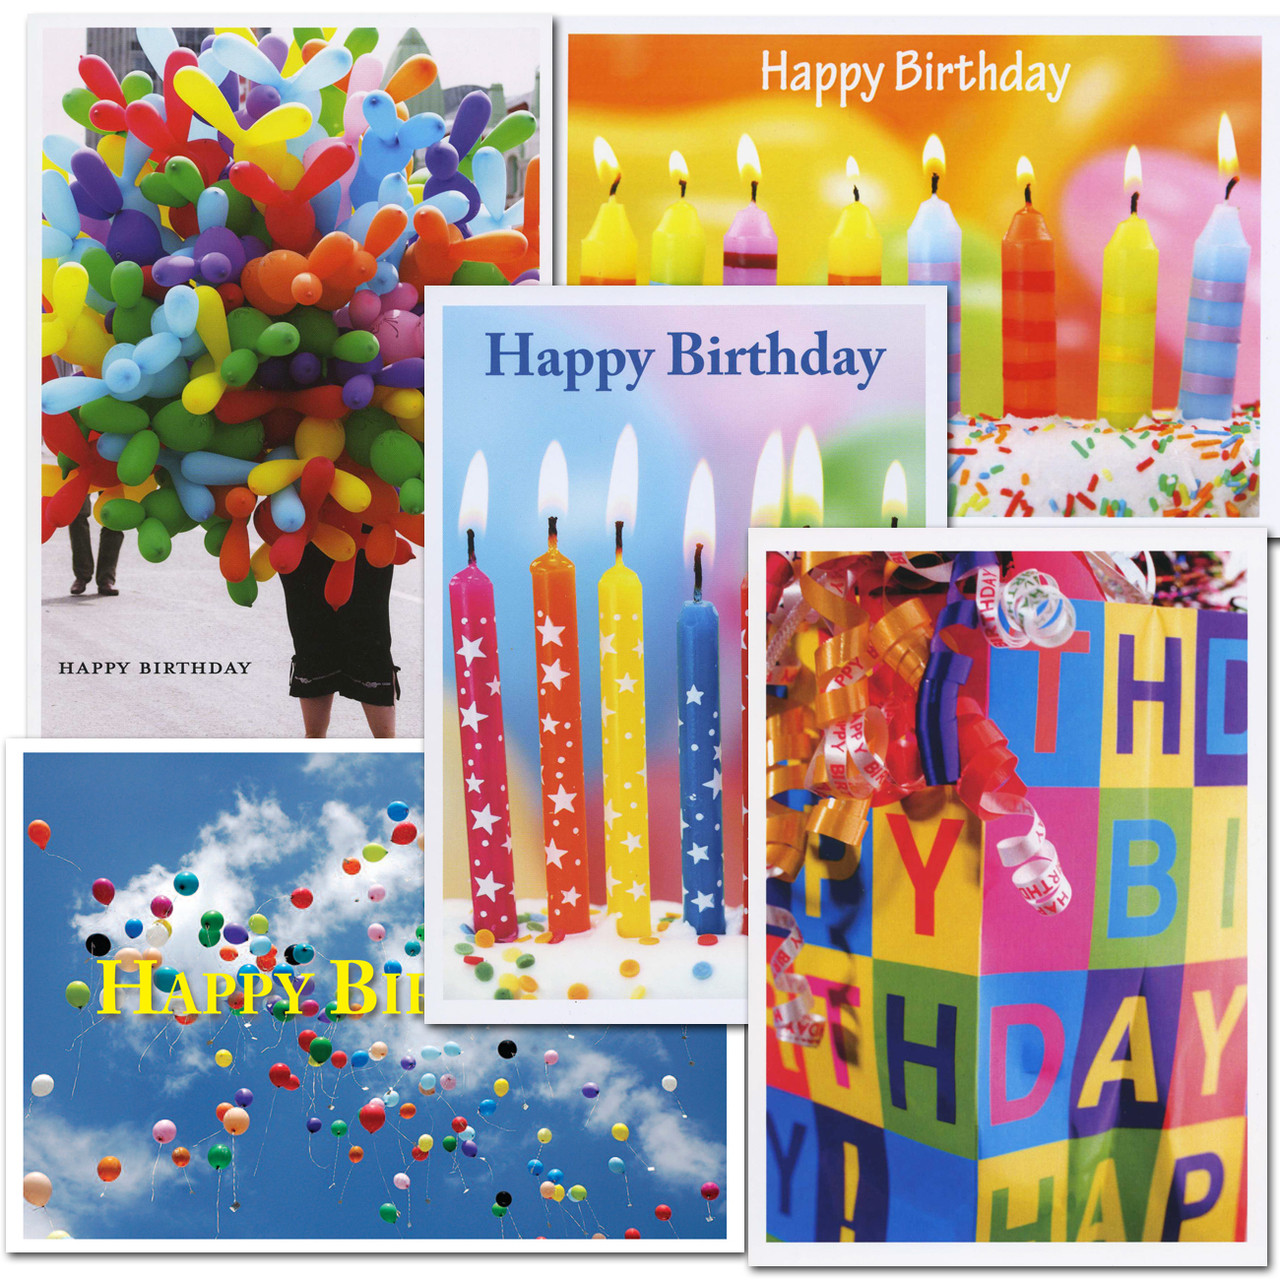 Birthday Cards Essentials Assortment With Bright Photos Of Candles Balloons And Gifts